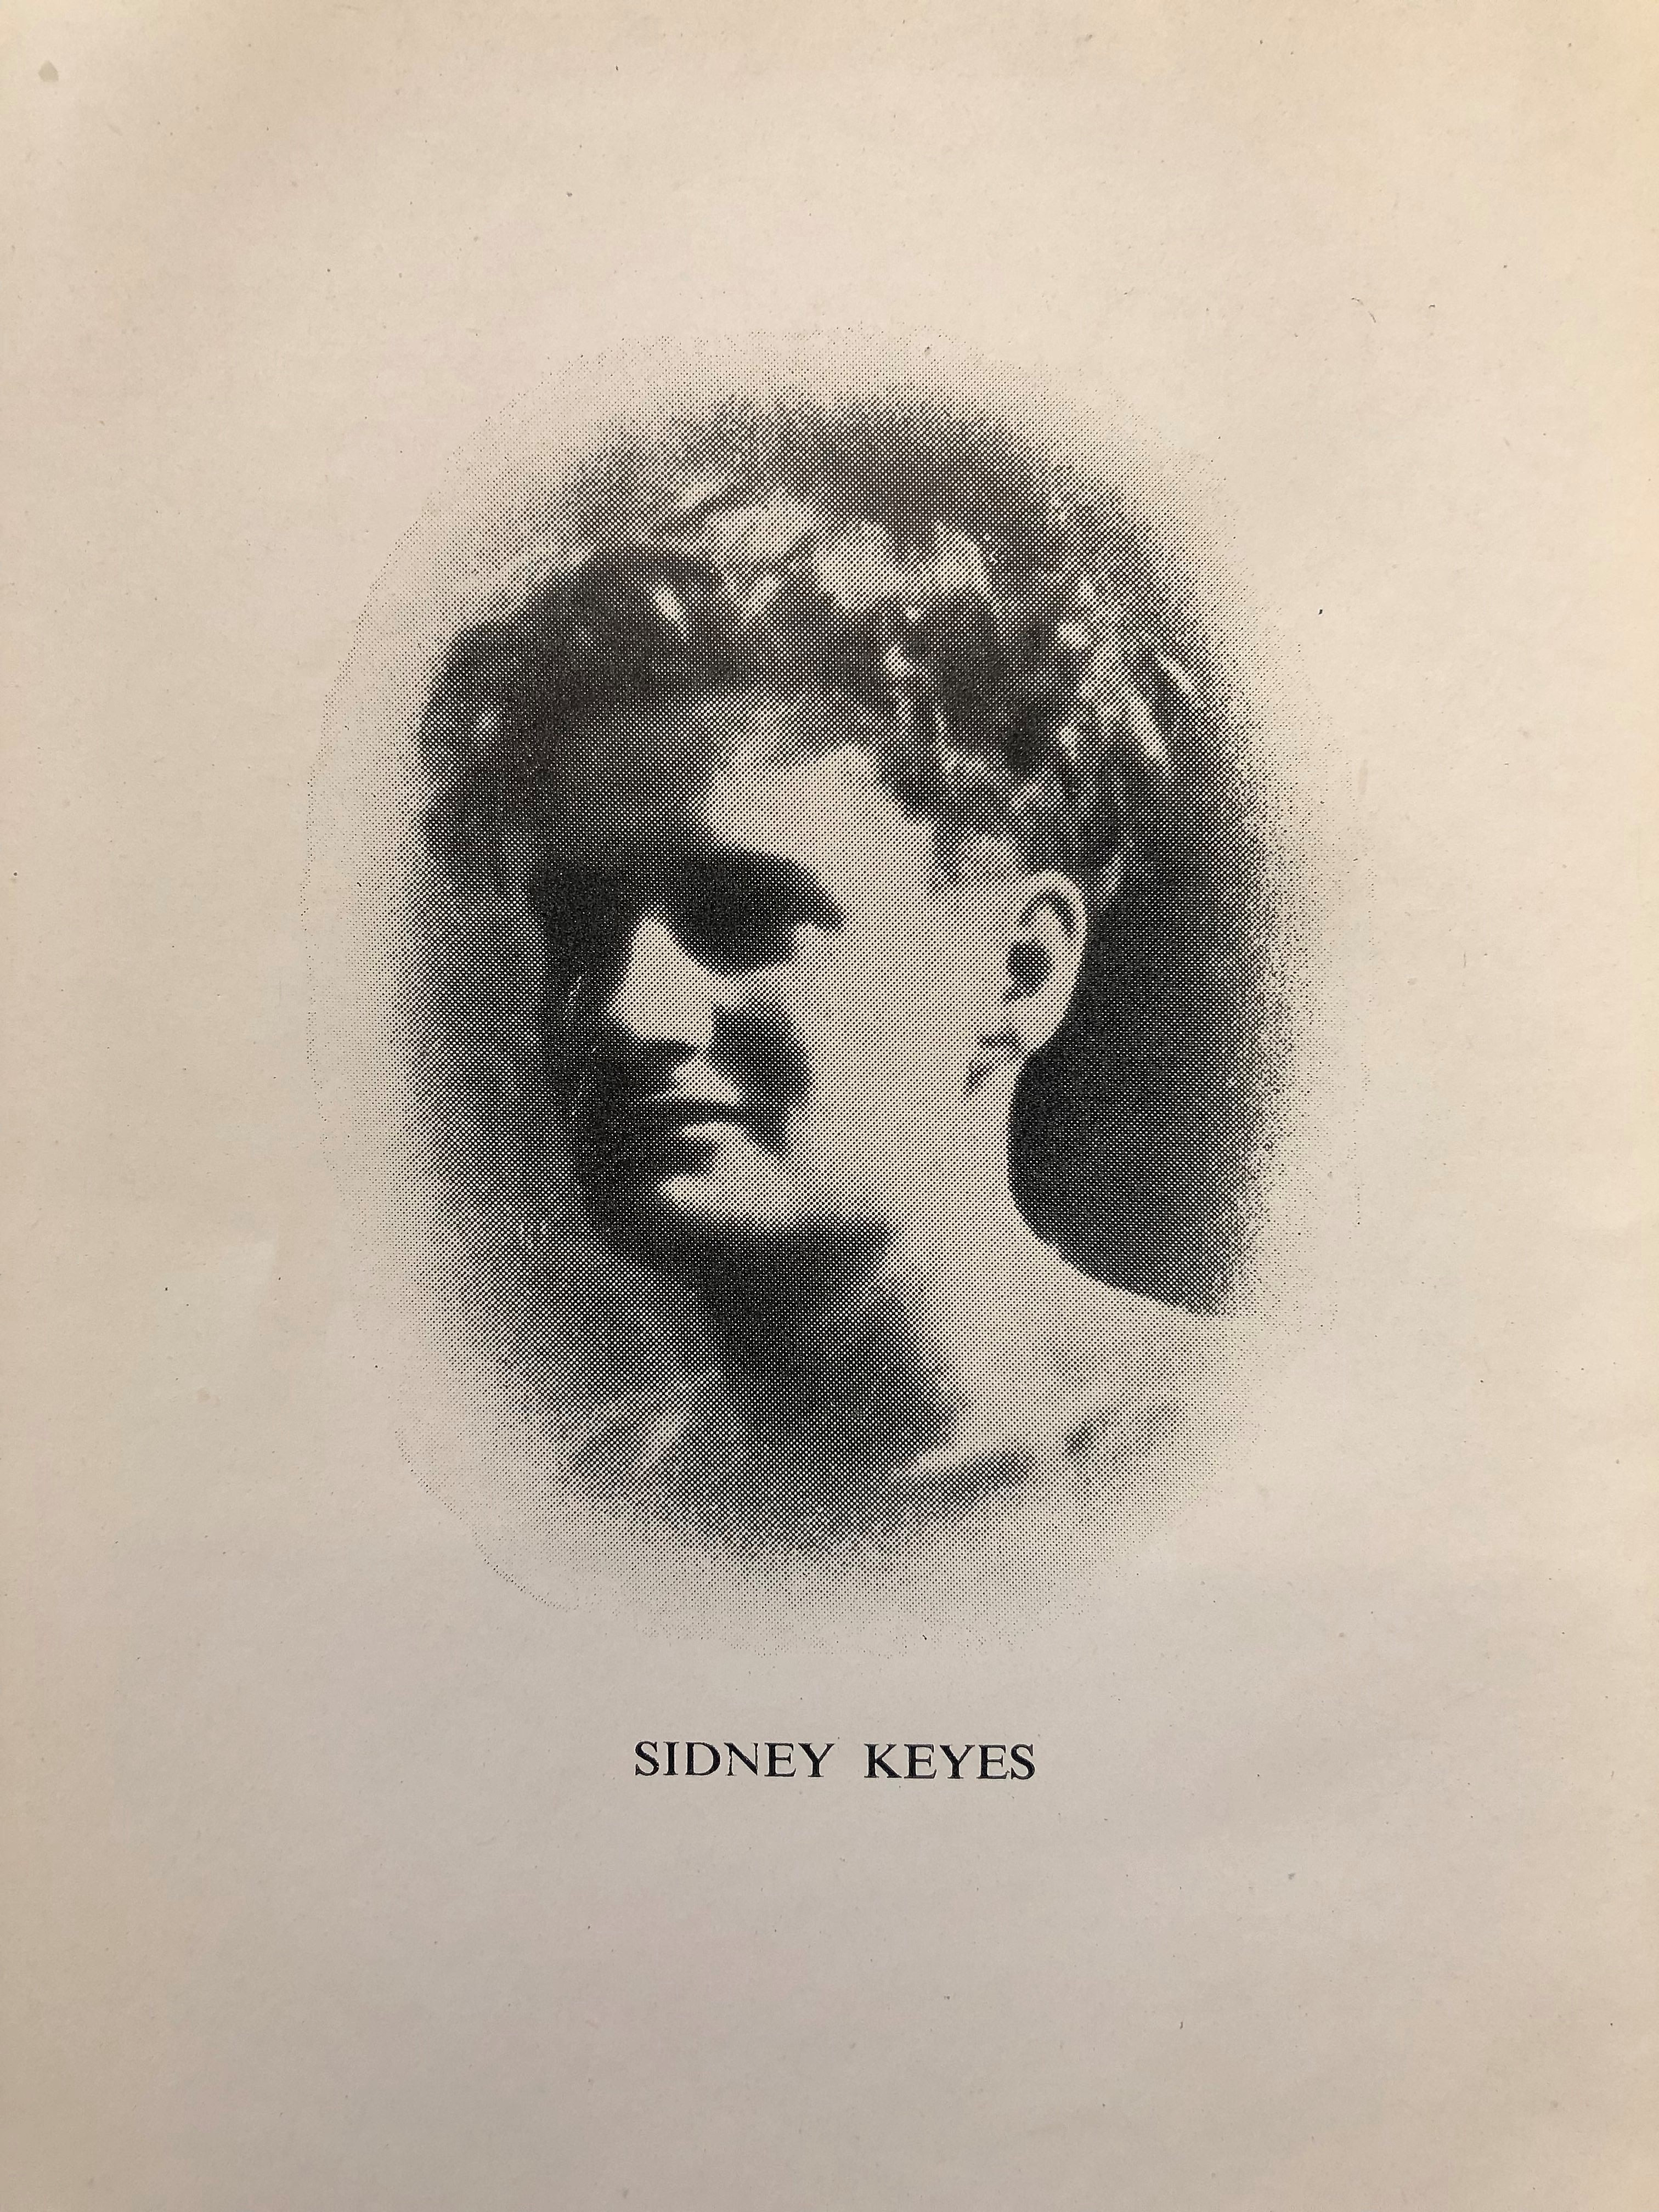 image shows a black and white photograph of the poet Sidney Keyes